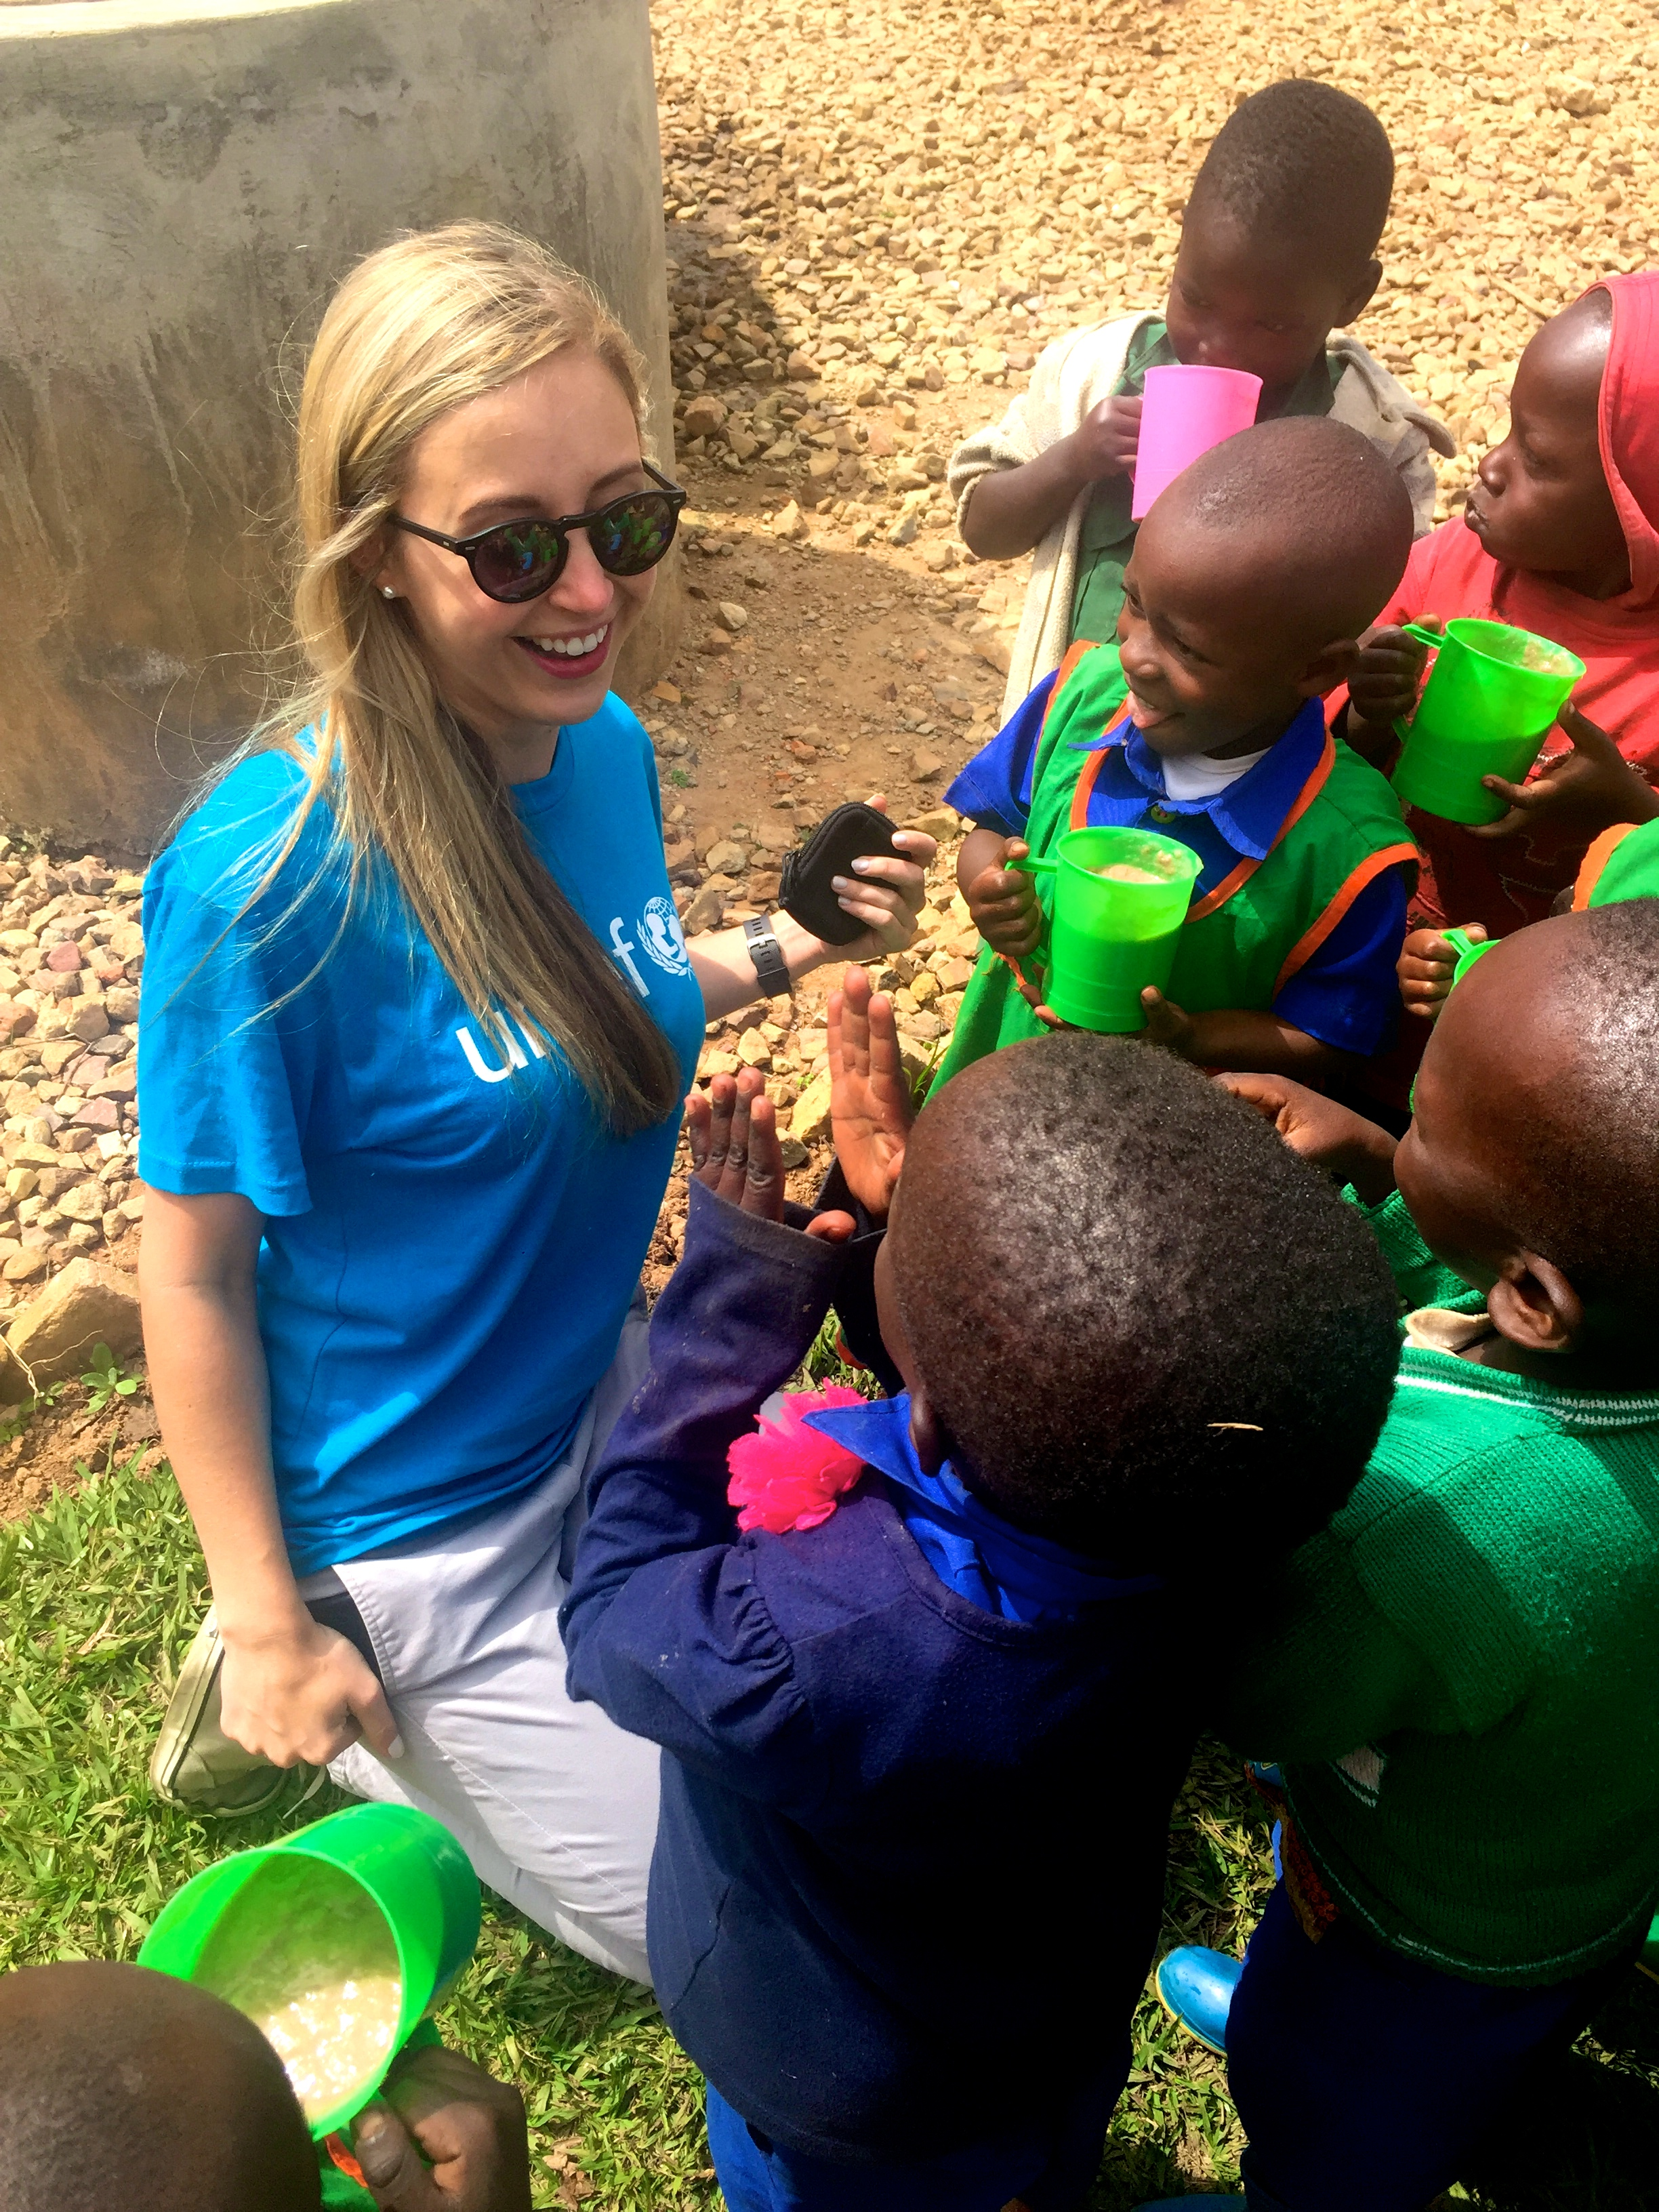 Sterling McDavid in Rwanda. The Starling Project will soon be funding solar projects in Rwanda with UNICEF.